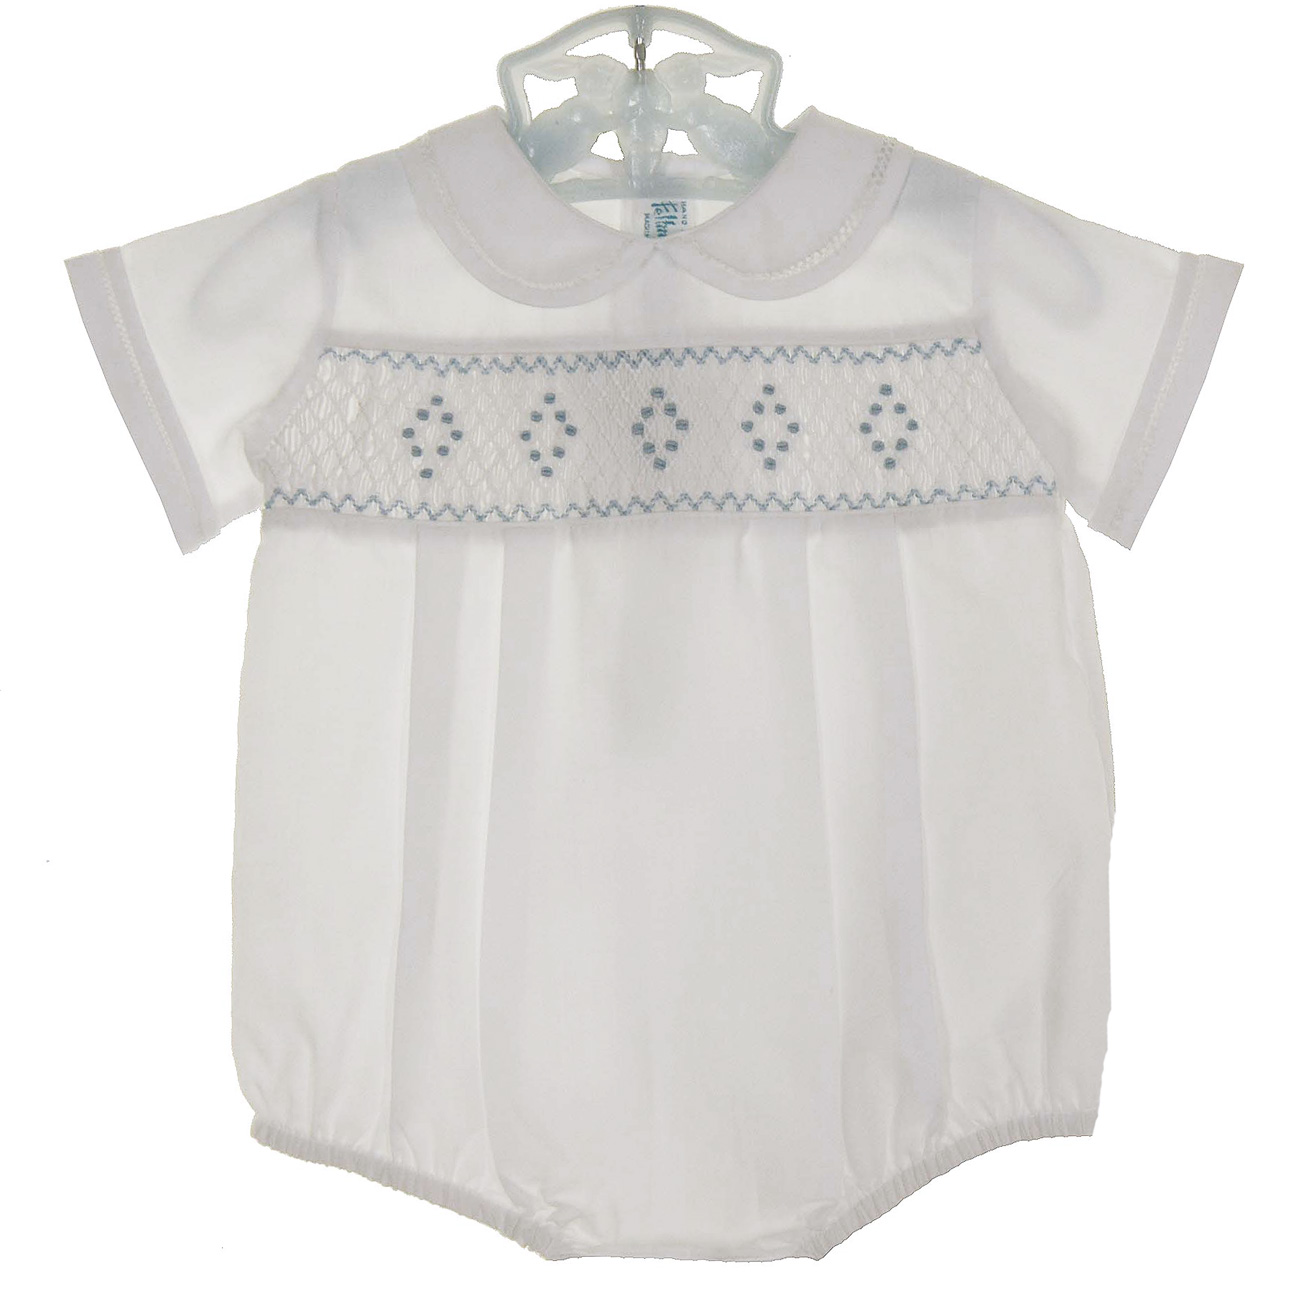 f3e6e446201 Feltman Brothers white smocked romper with blue embroidery